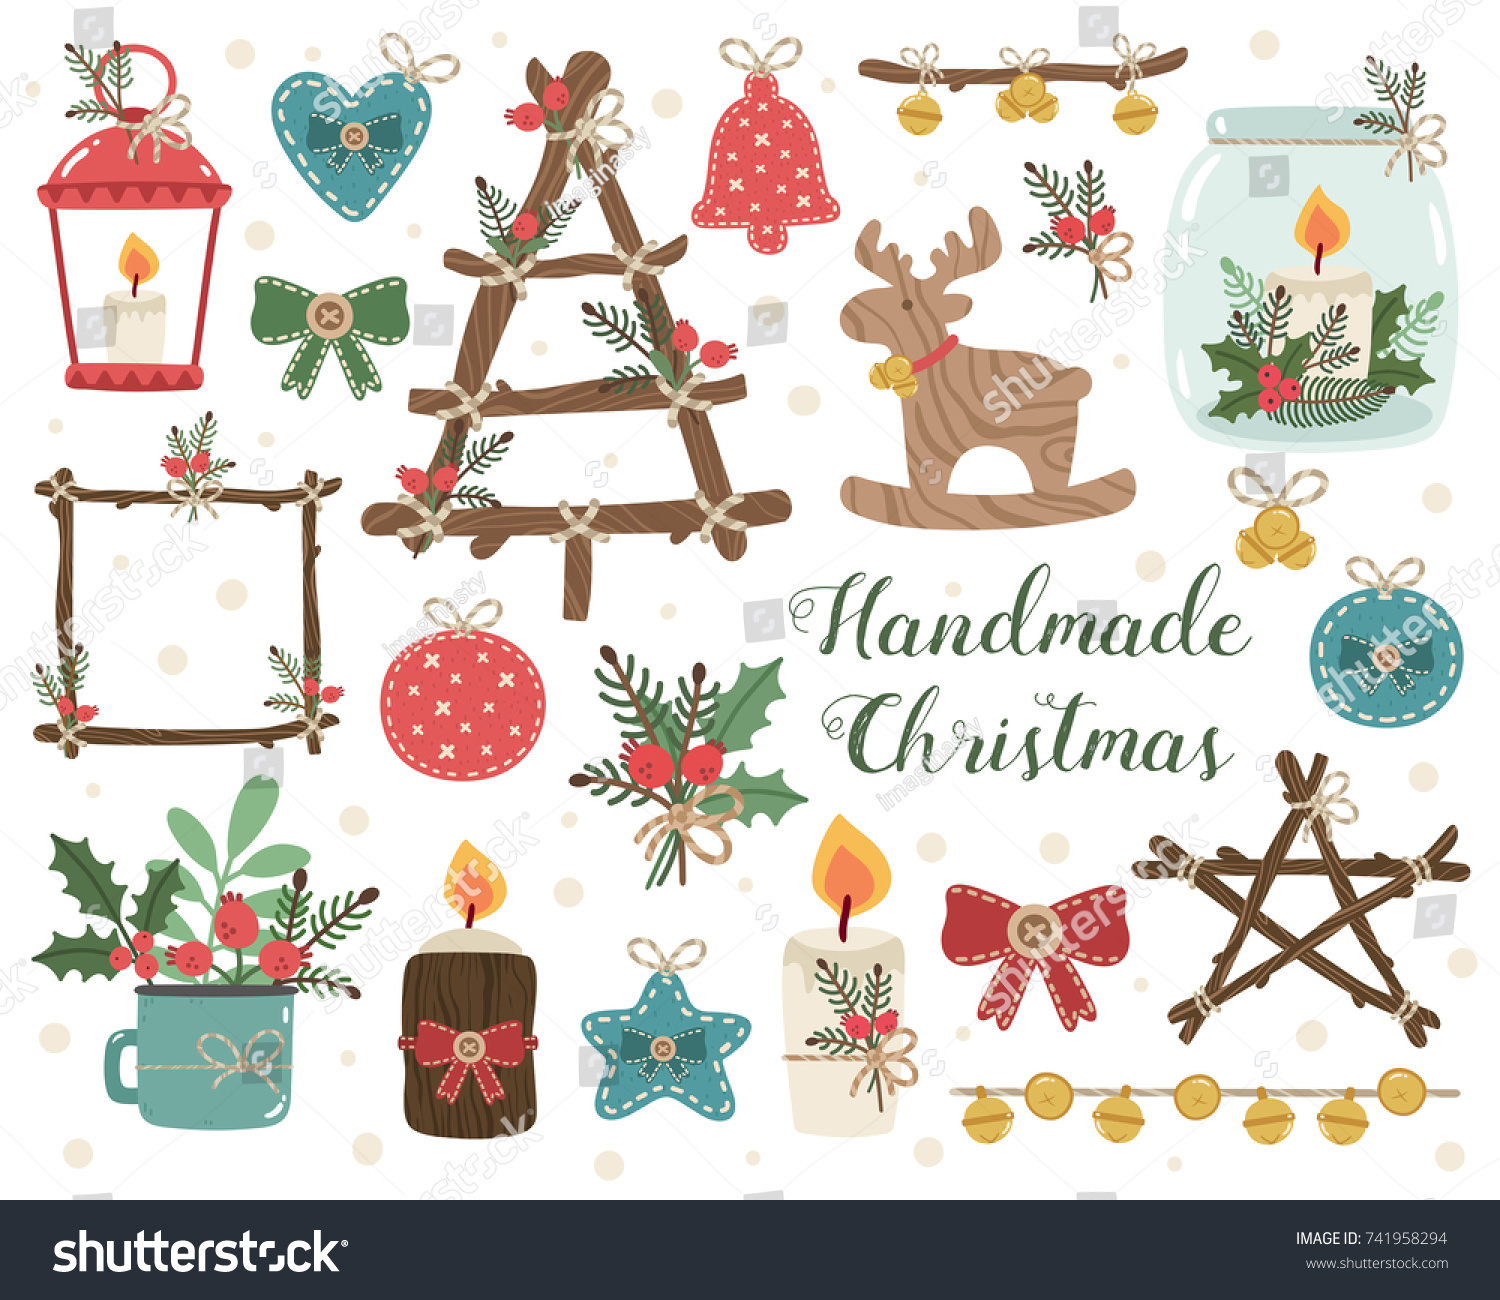 Vector Set Of Handmade Craft Decorations Candlesticks Toys Jingle Handcrafts Rustic